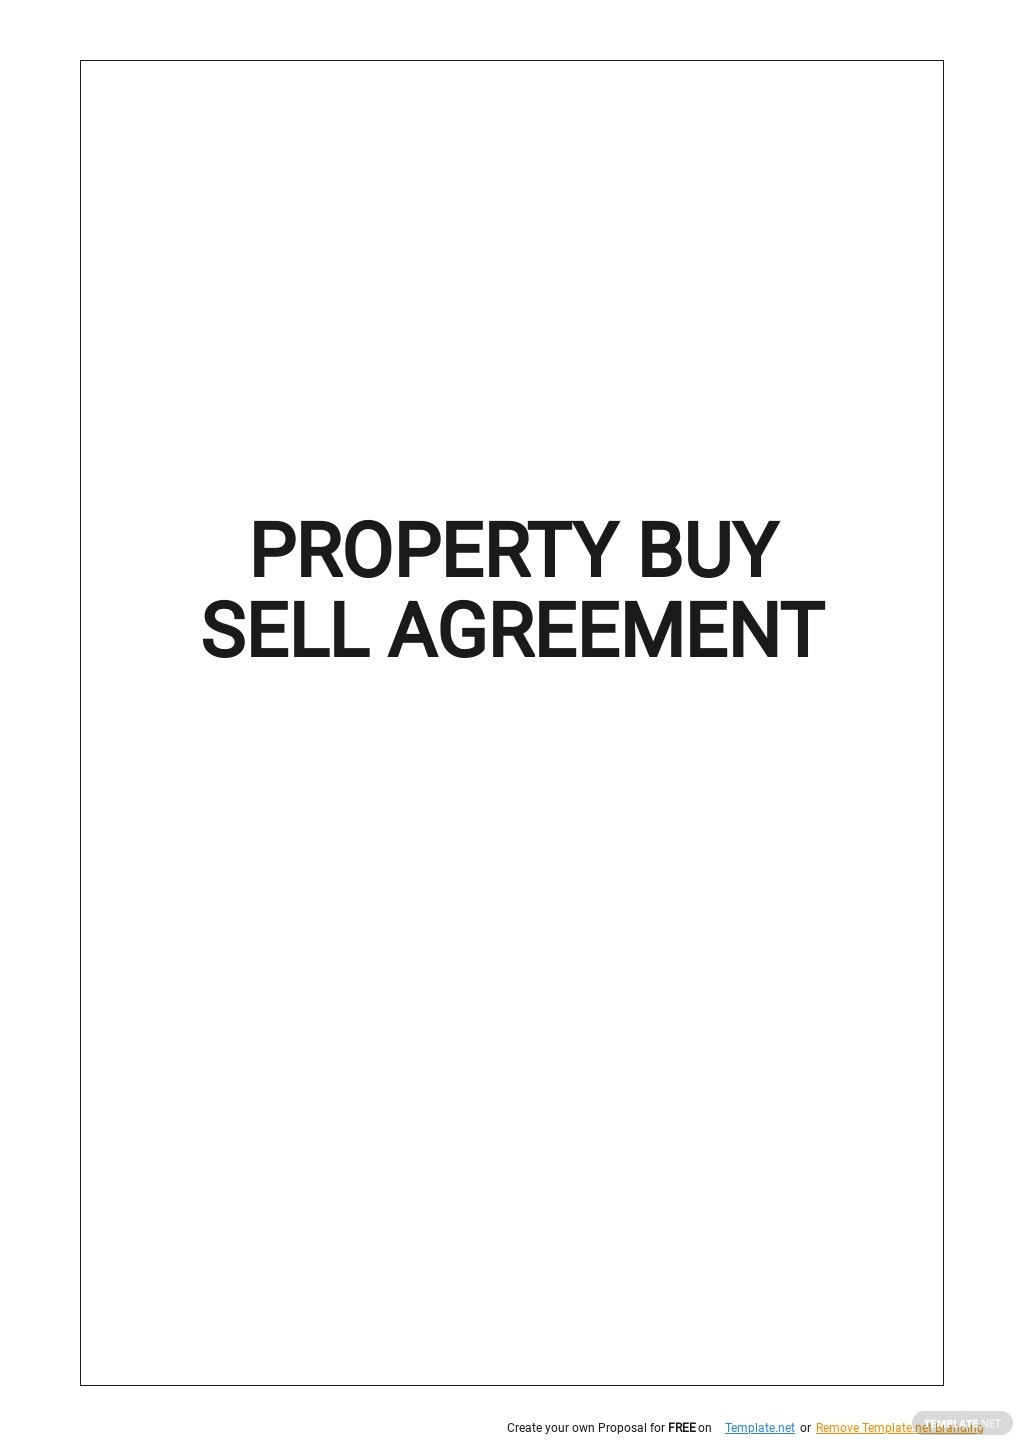 Property Buy Sell Agreement Template.jpe